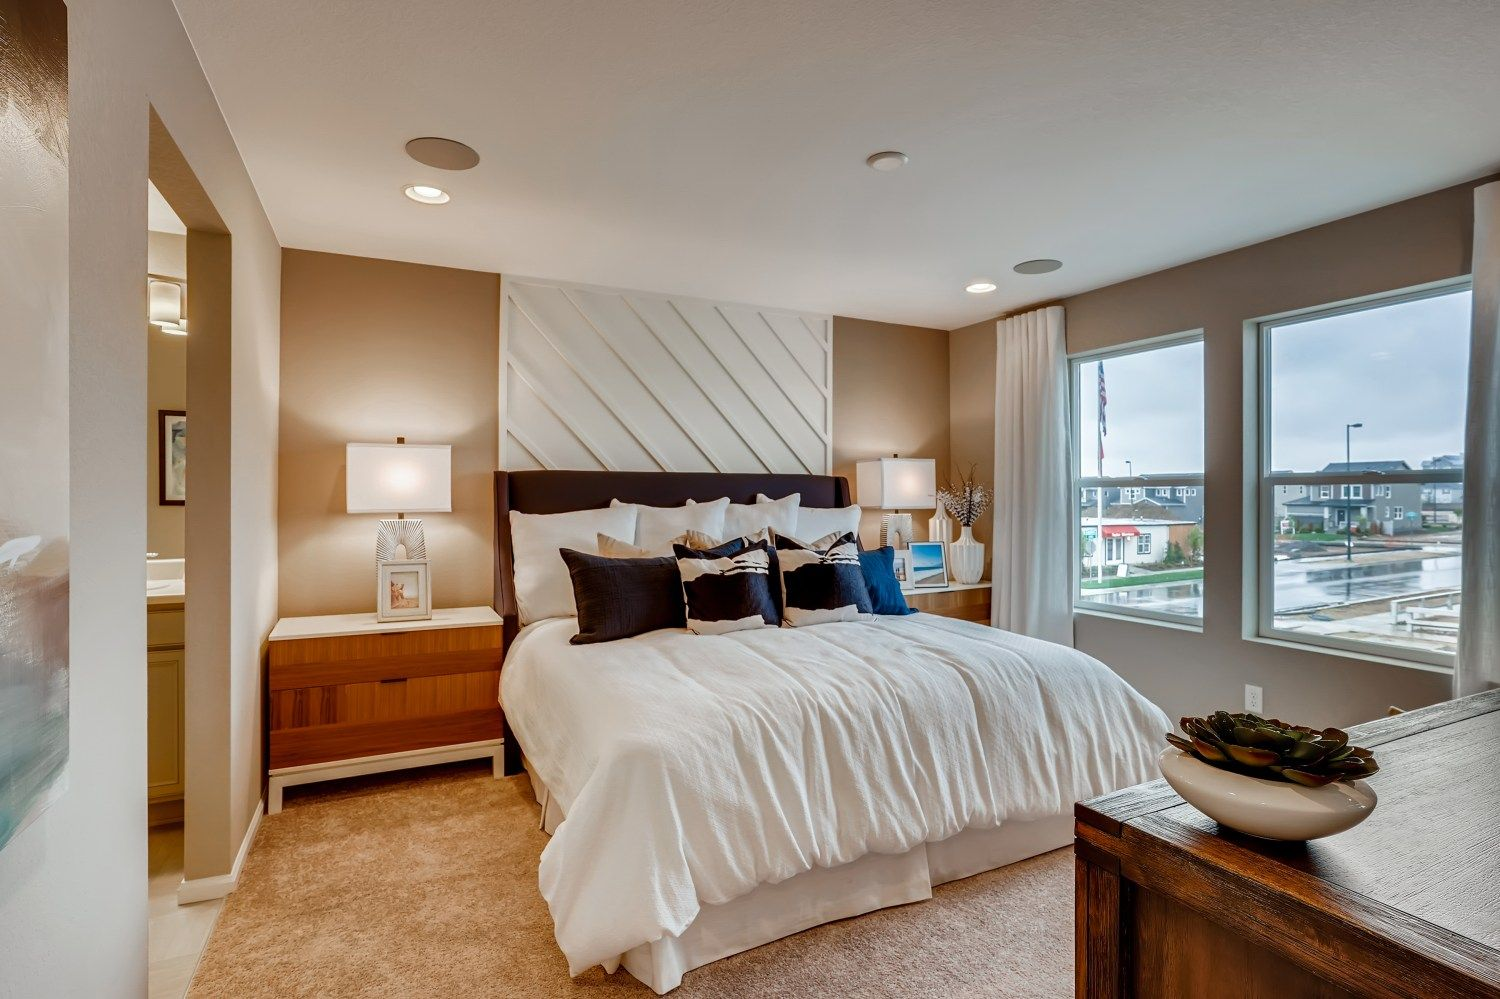 Bedroom featured in the Larkspur By Taylor Morrison in Denver, CO